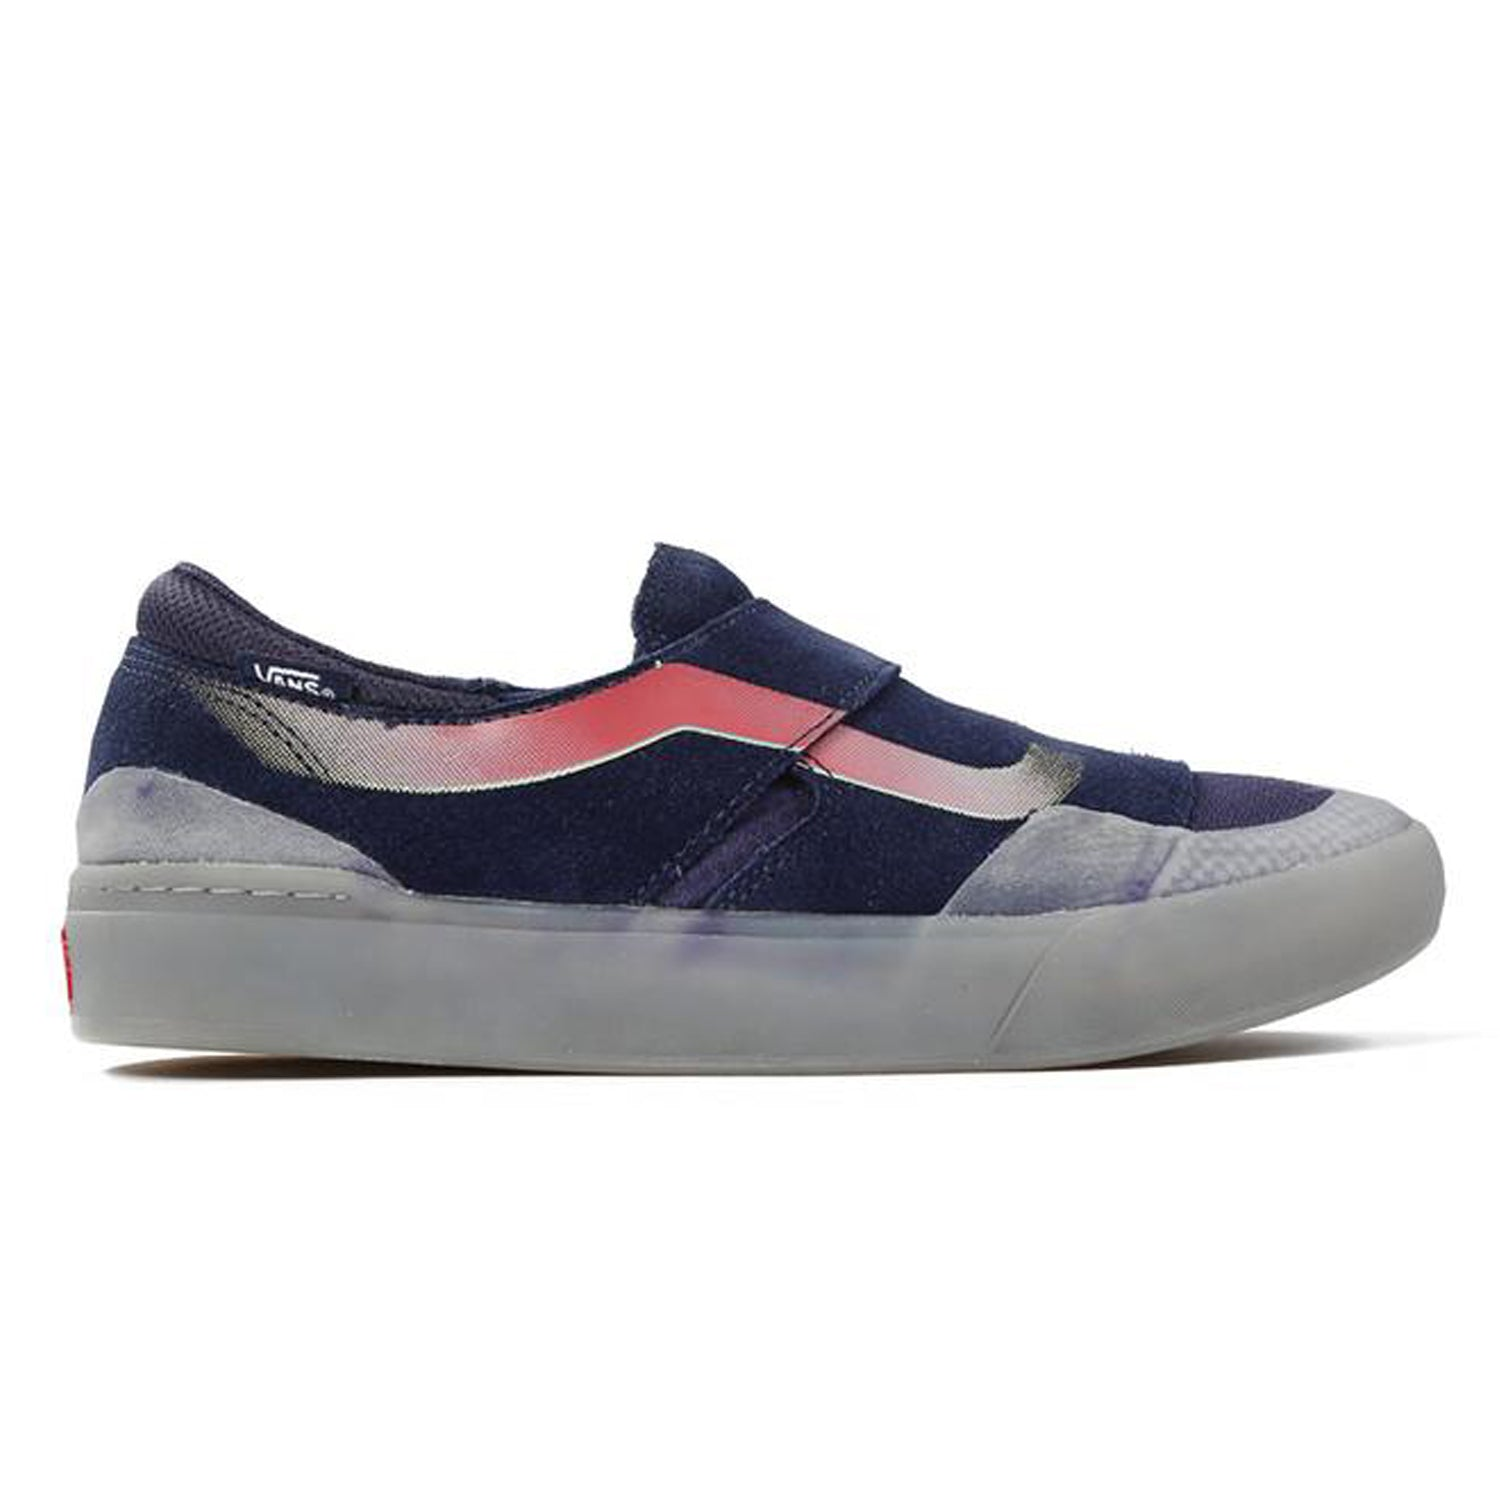 Vans ArcAd Slip On Pro EXP Navy/Frost